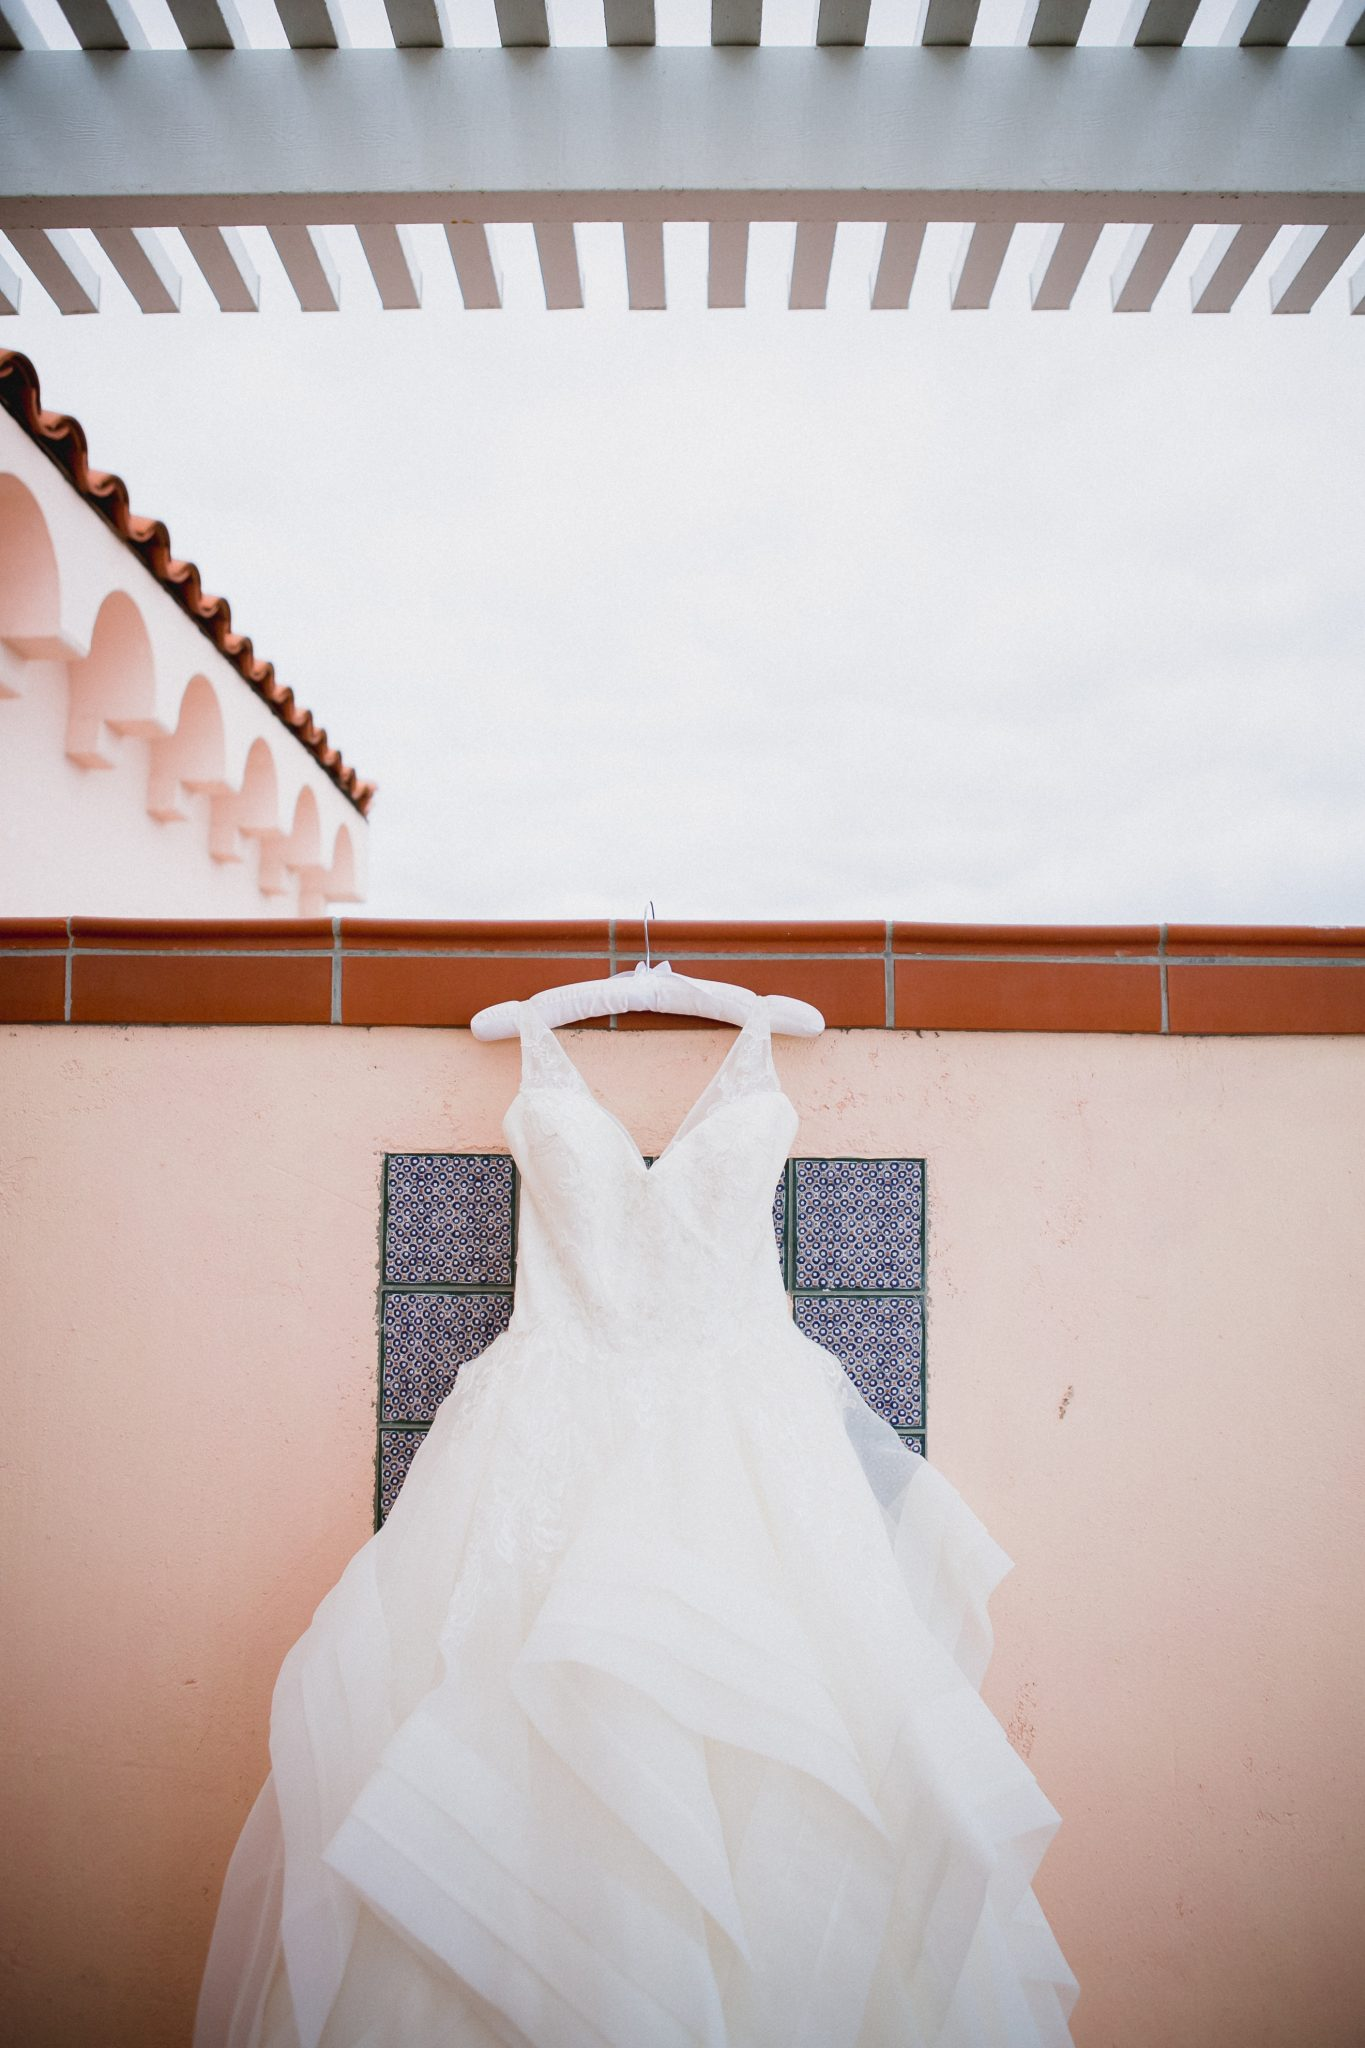 White lace and tulle wedding dress hanging up against stucco wall